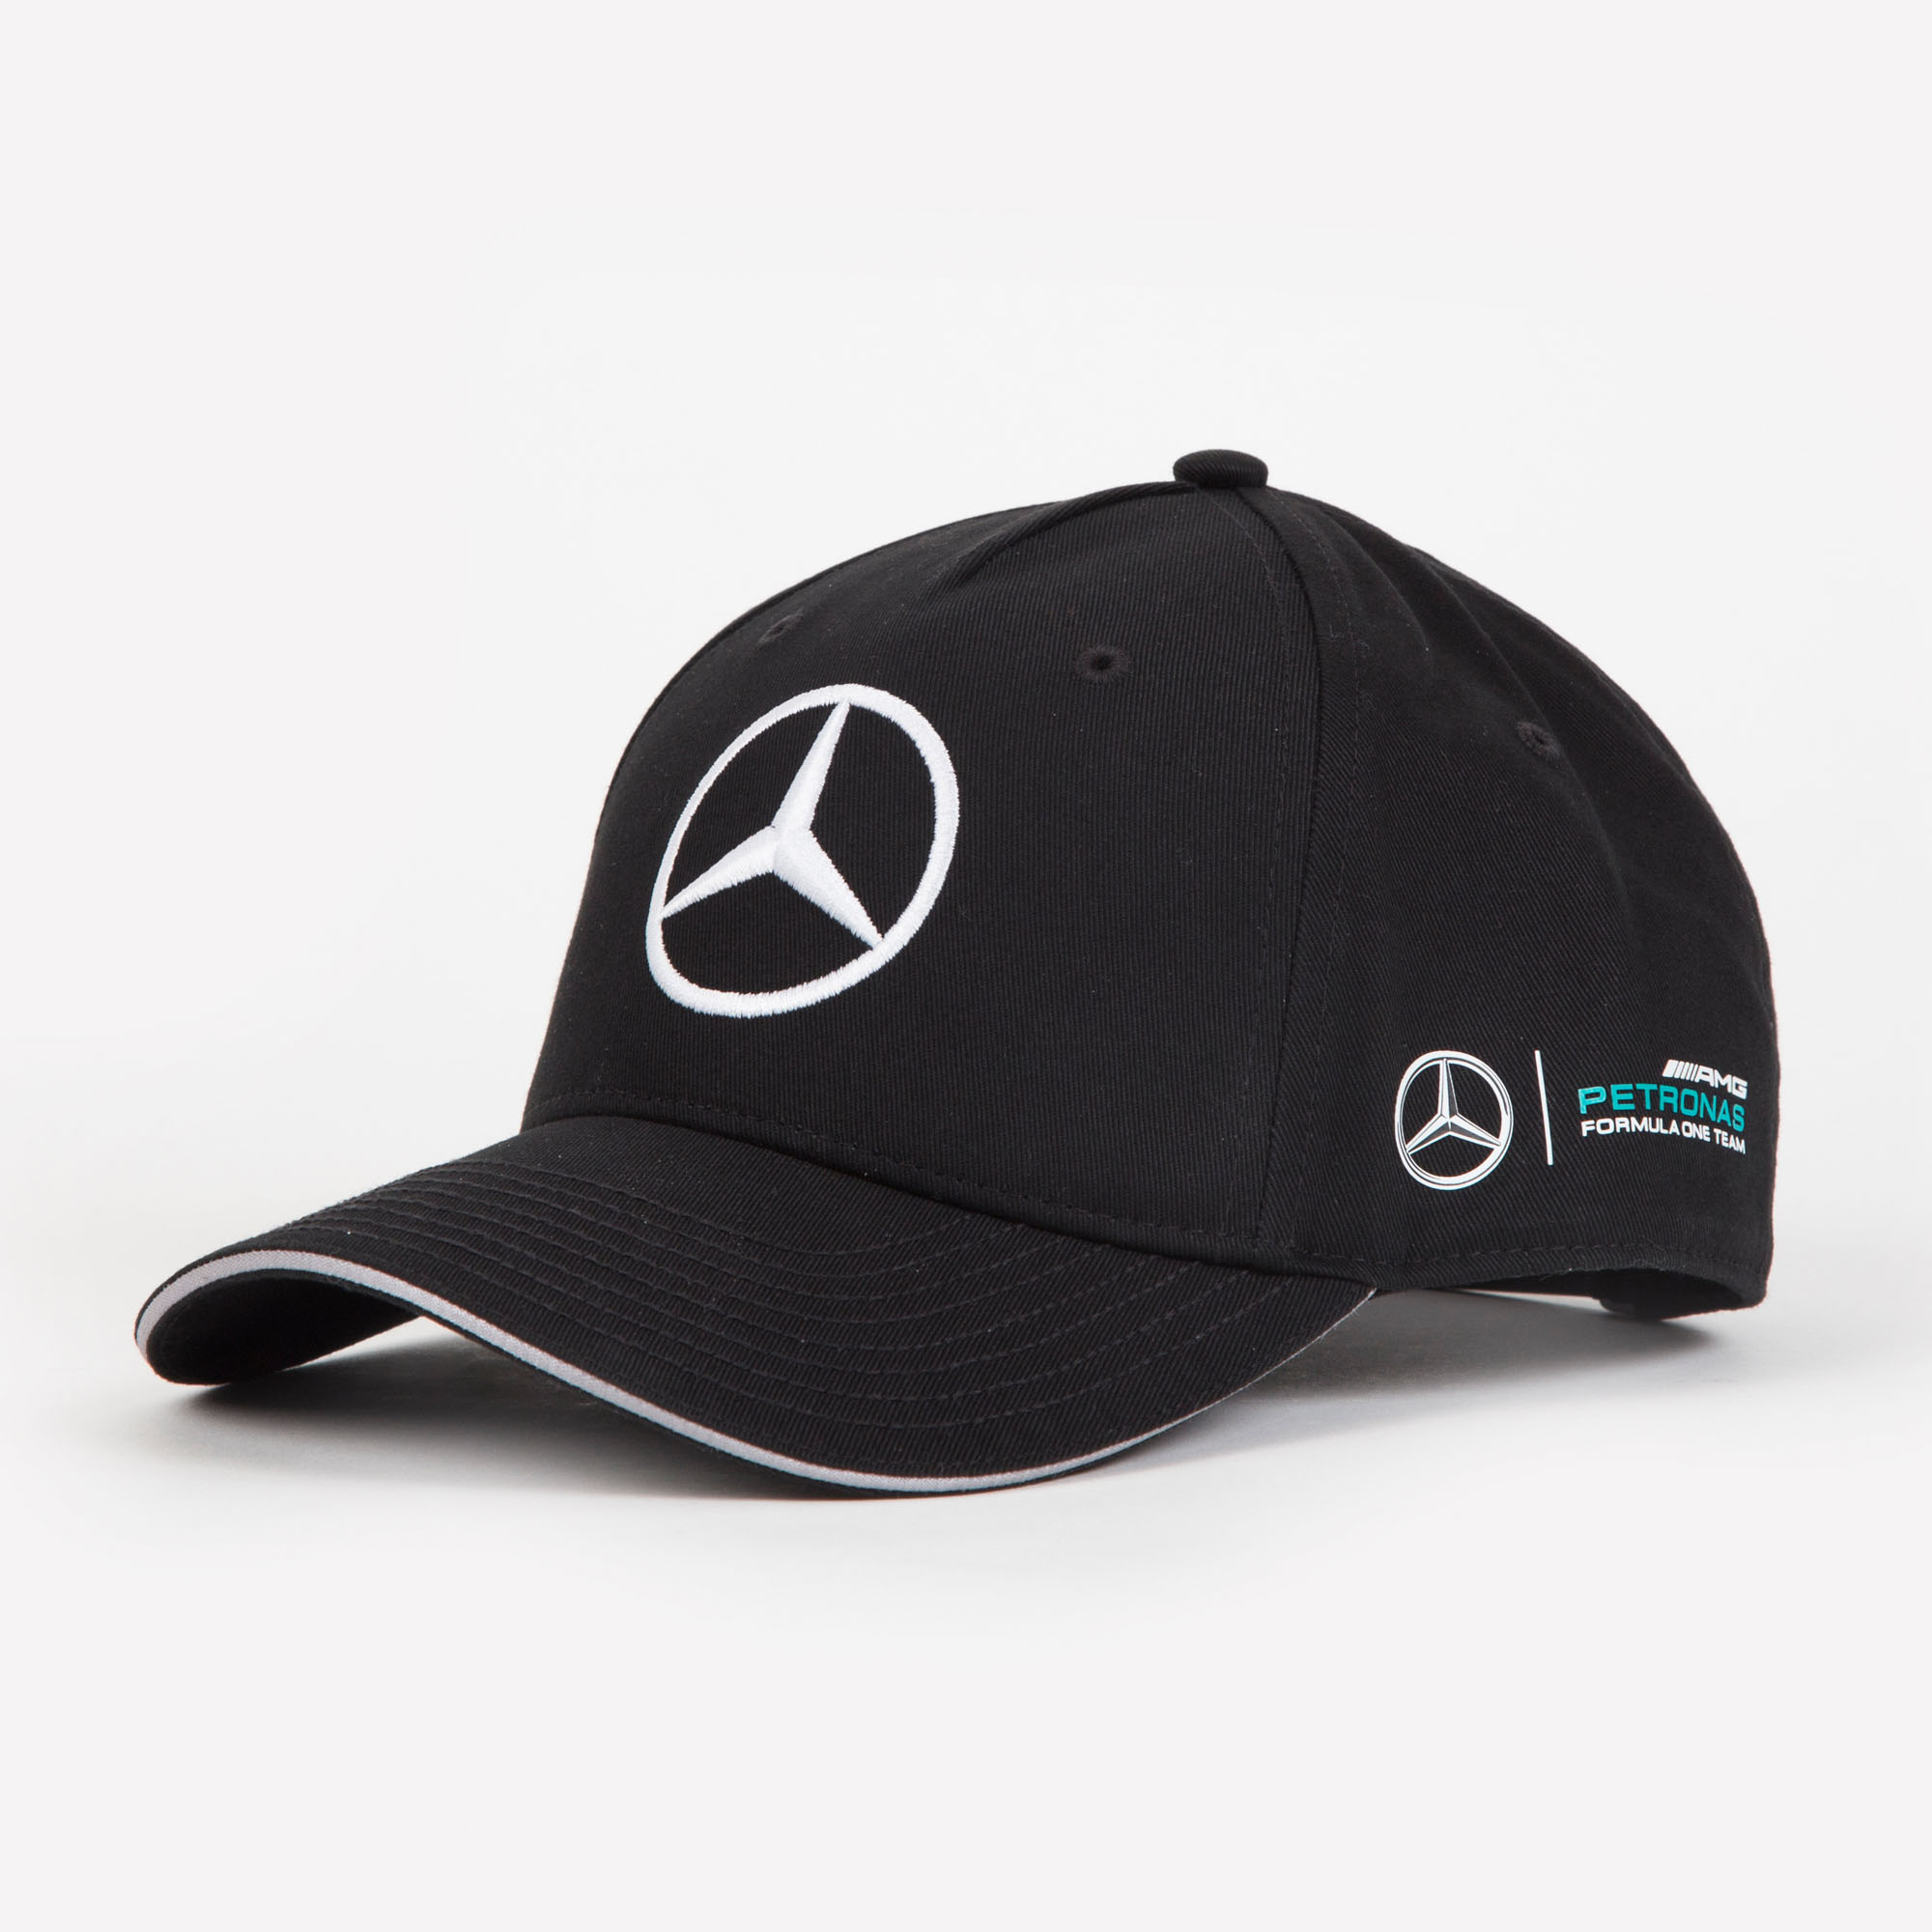 2017 lewis hamilton team driver cap black hugo boss. Black Bedroom Furniture Sets. Home Design Ideas